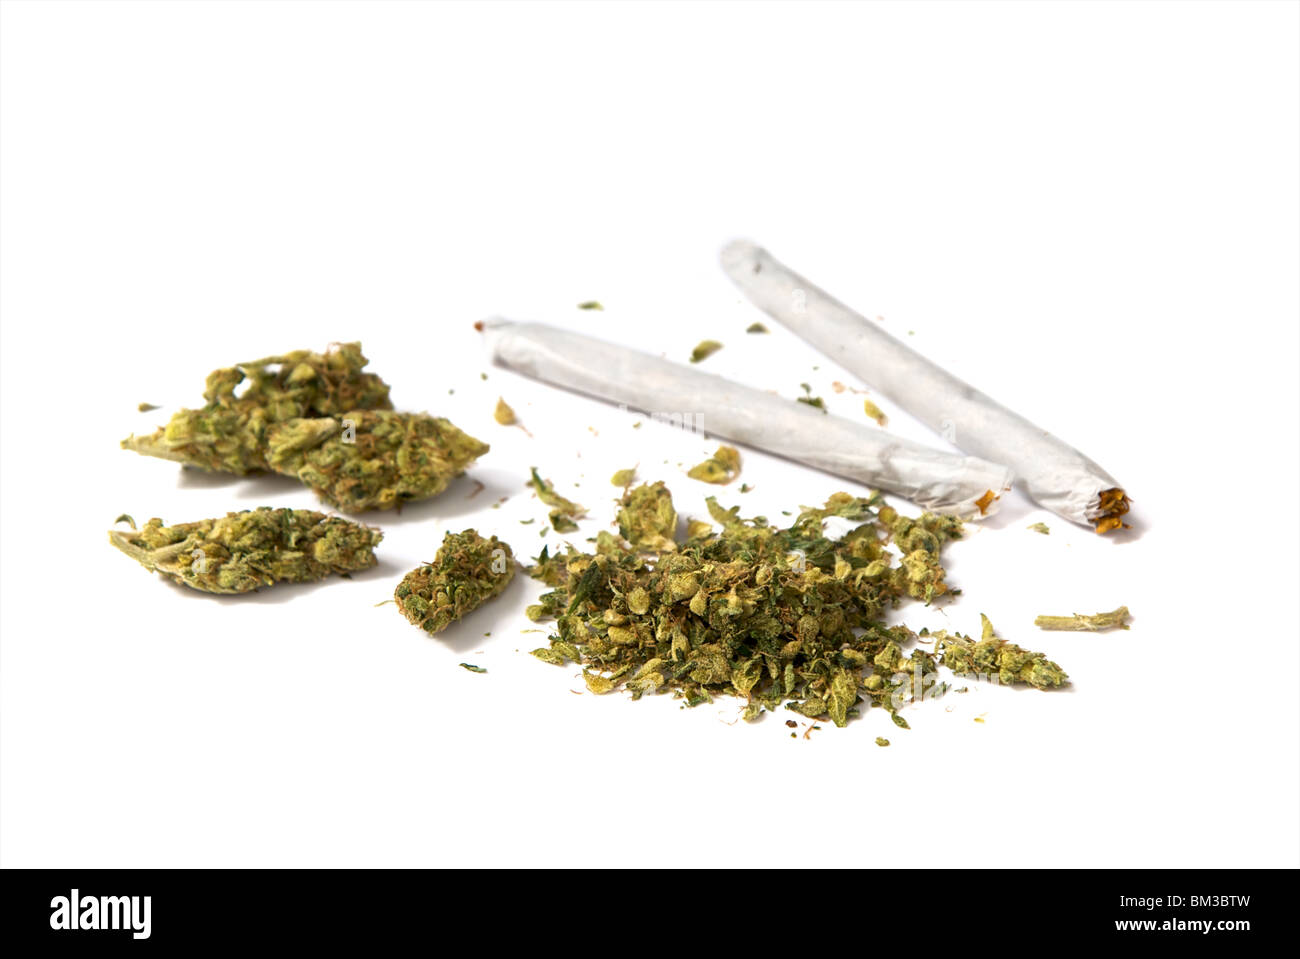 two joints and a stash of marijuana on white background - Stock Image